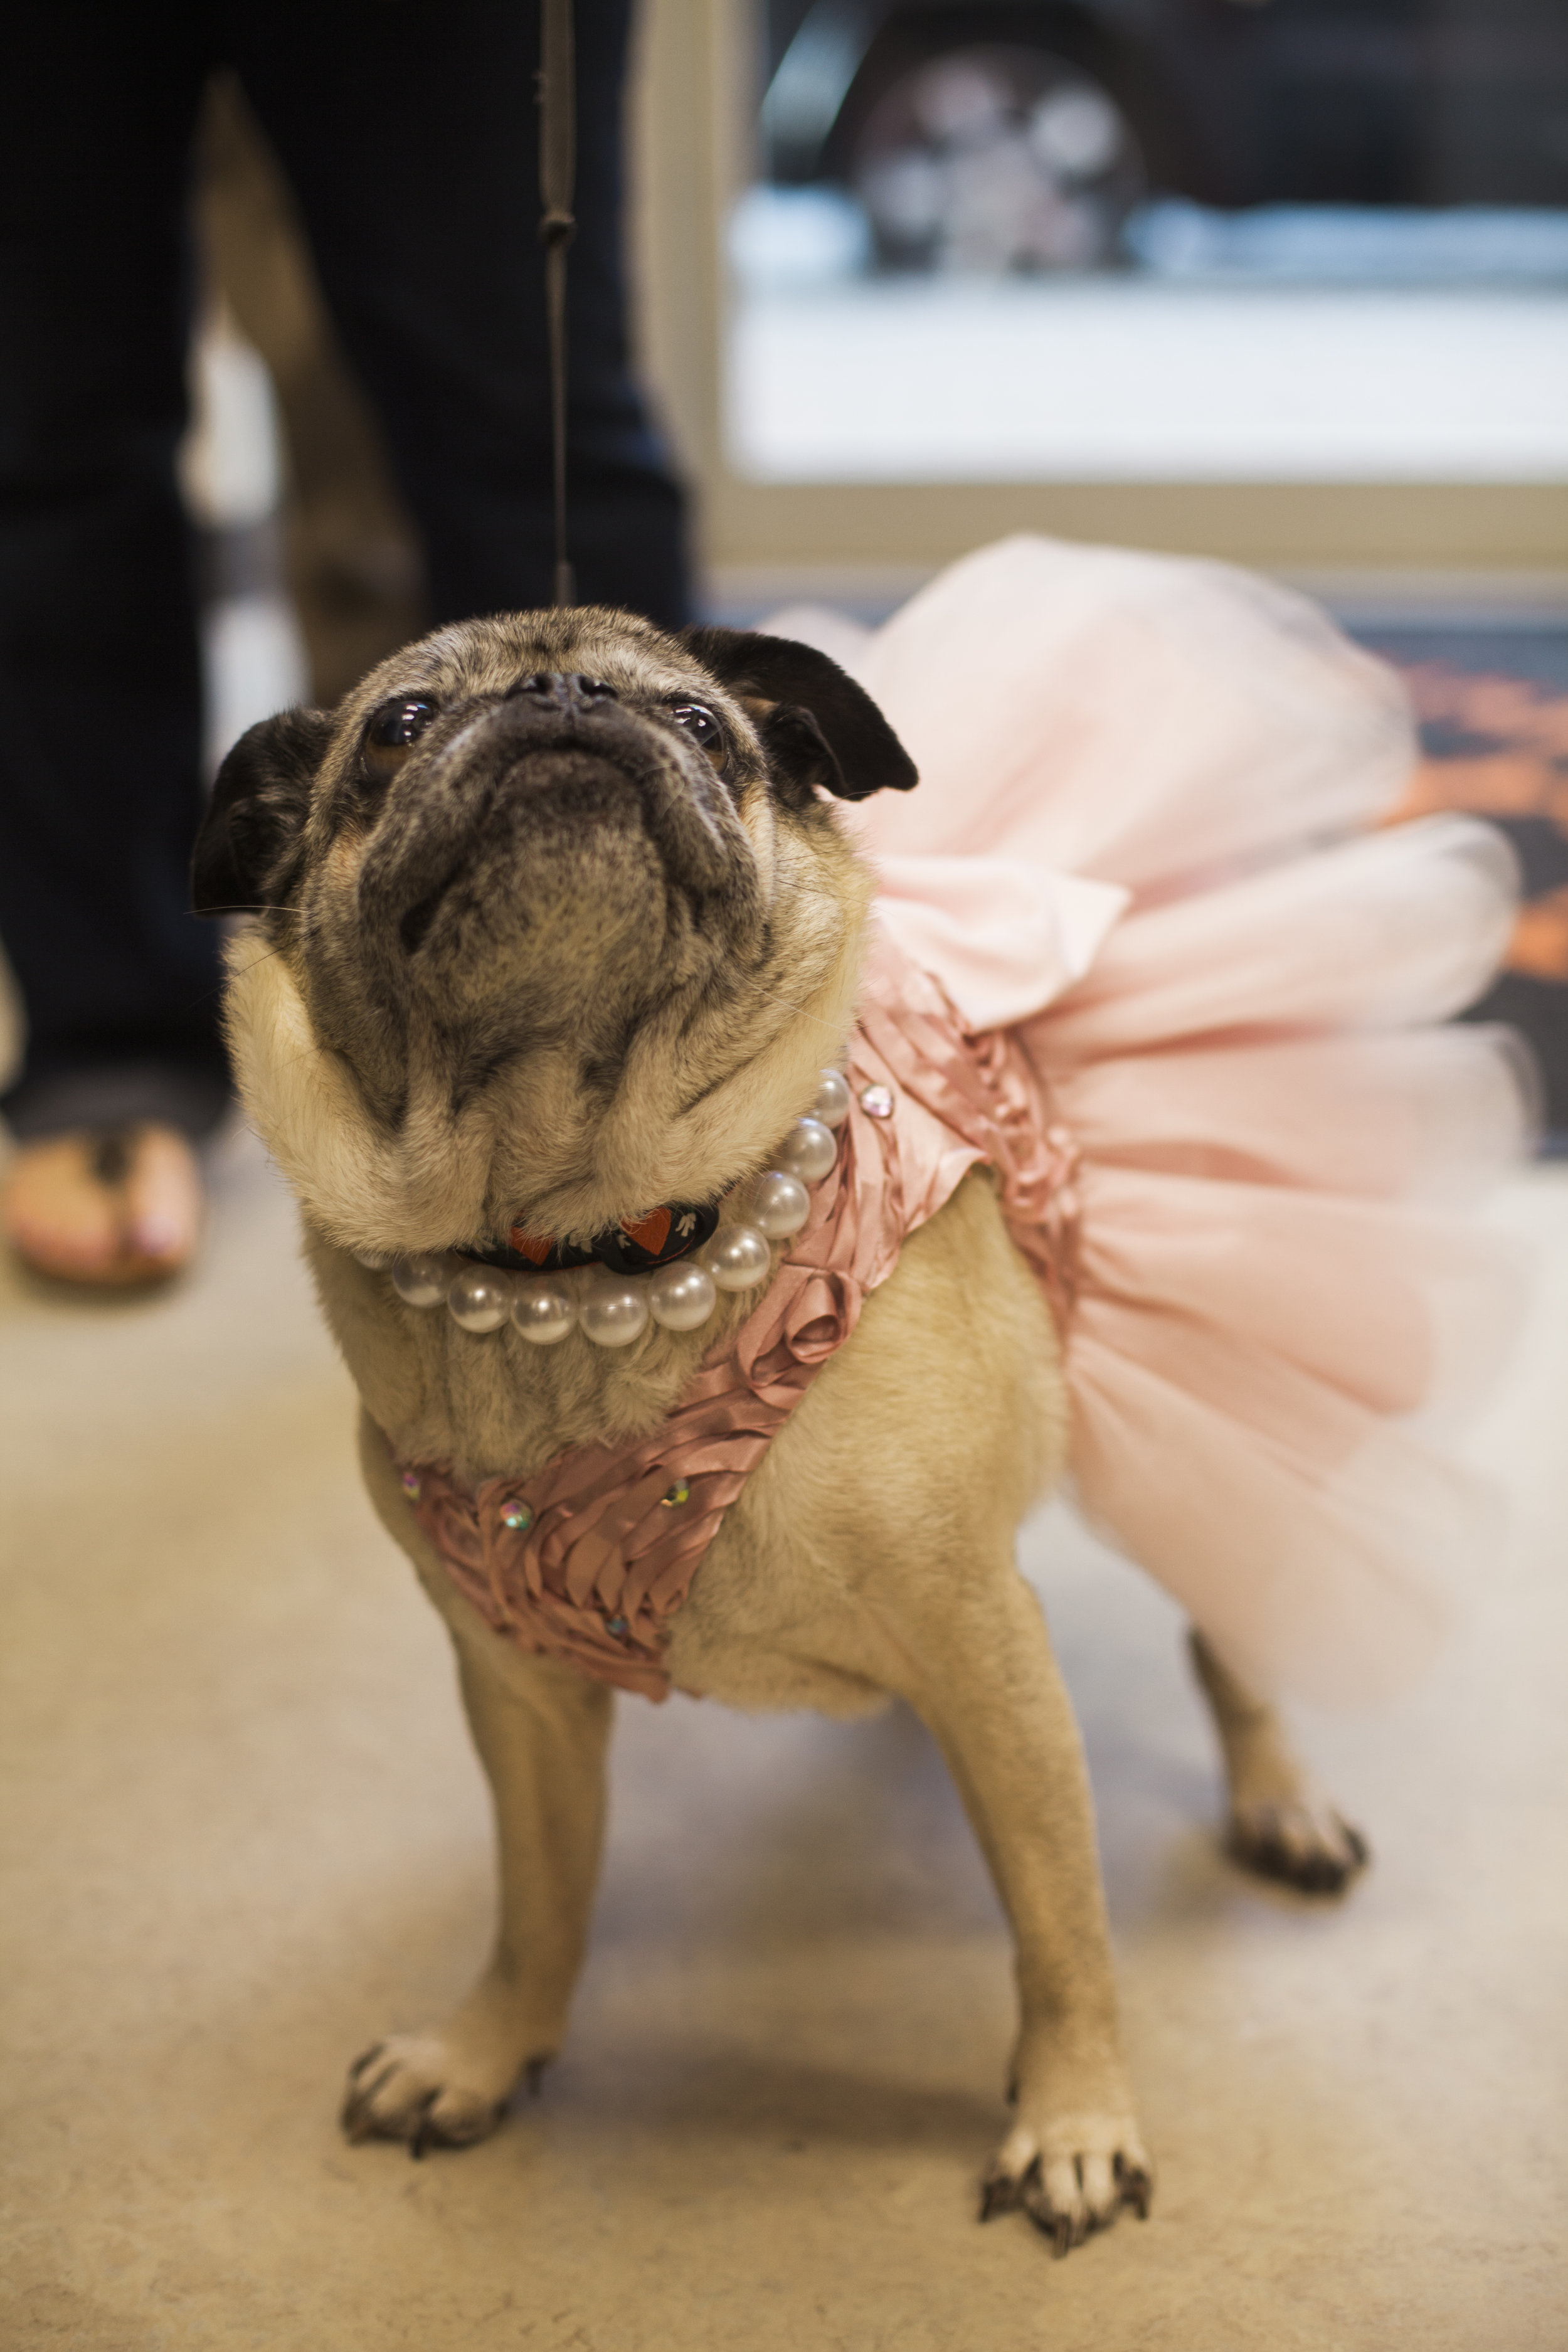 Clarendon Animal Care Veterinary Clinic Arlington Virginia Pug in a Pink Tutu